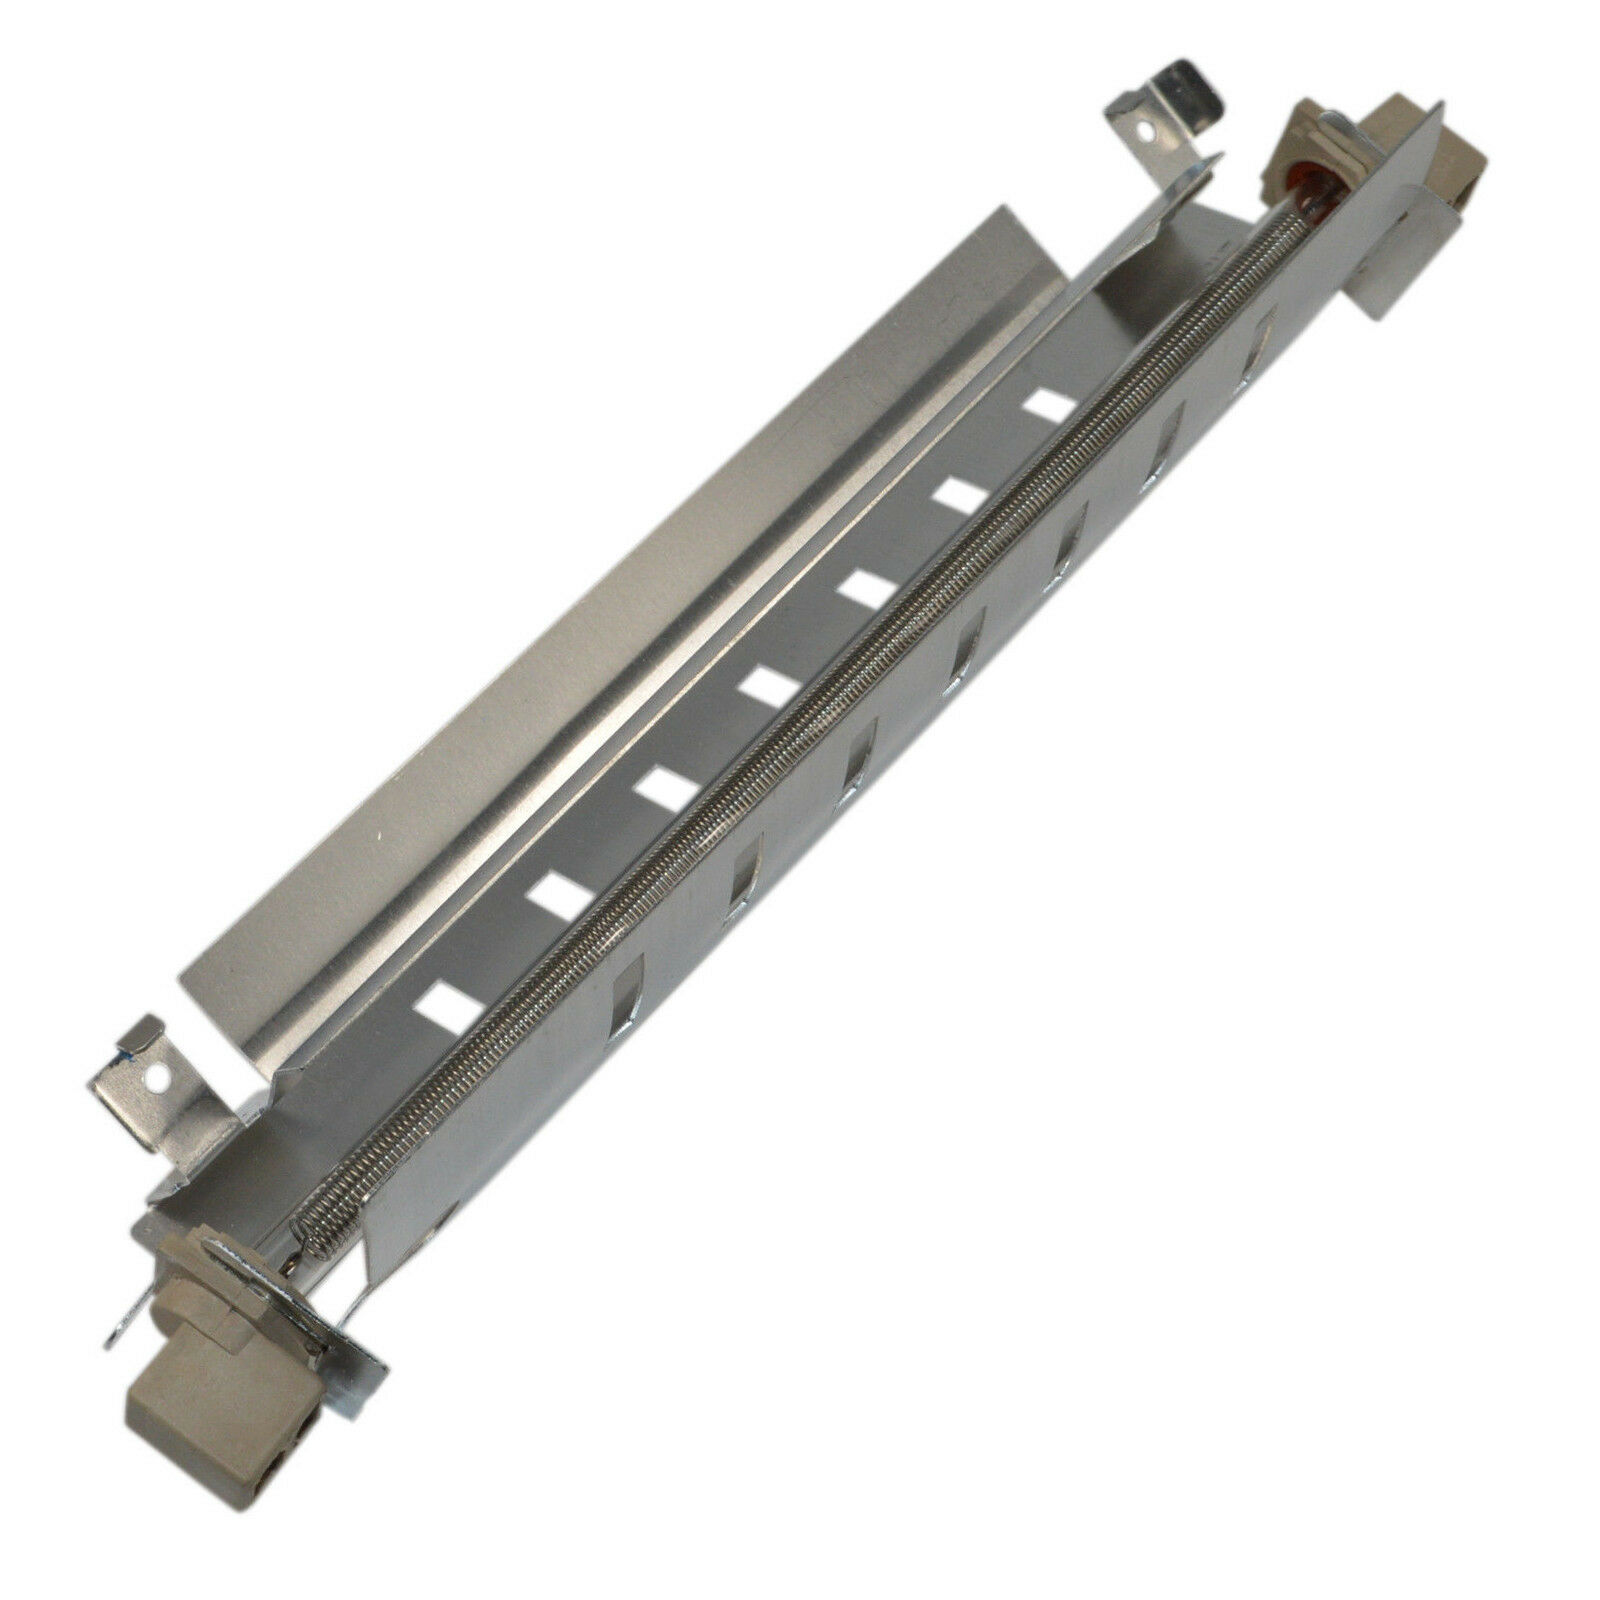 HQRP Defrost Heater for GE PS Series Refrigerators, WR51X100